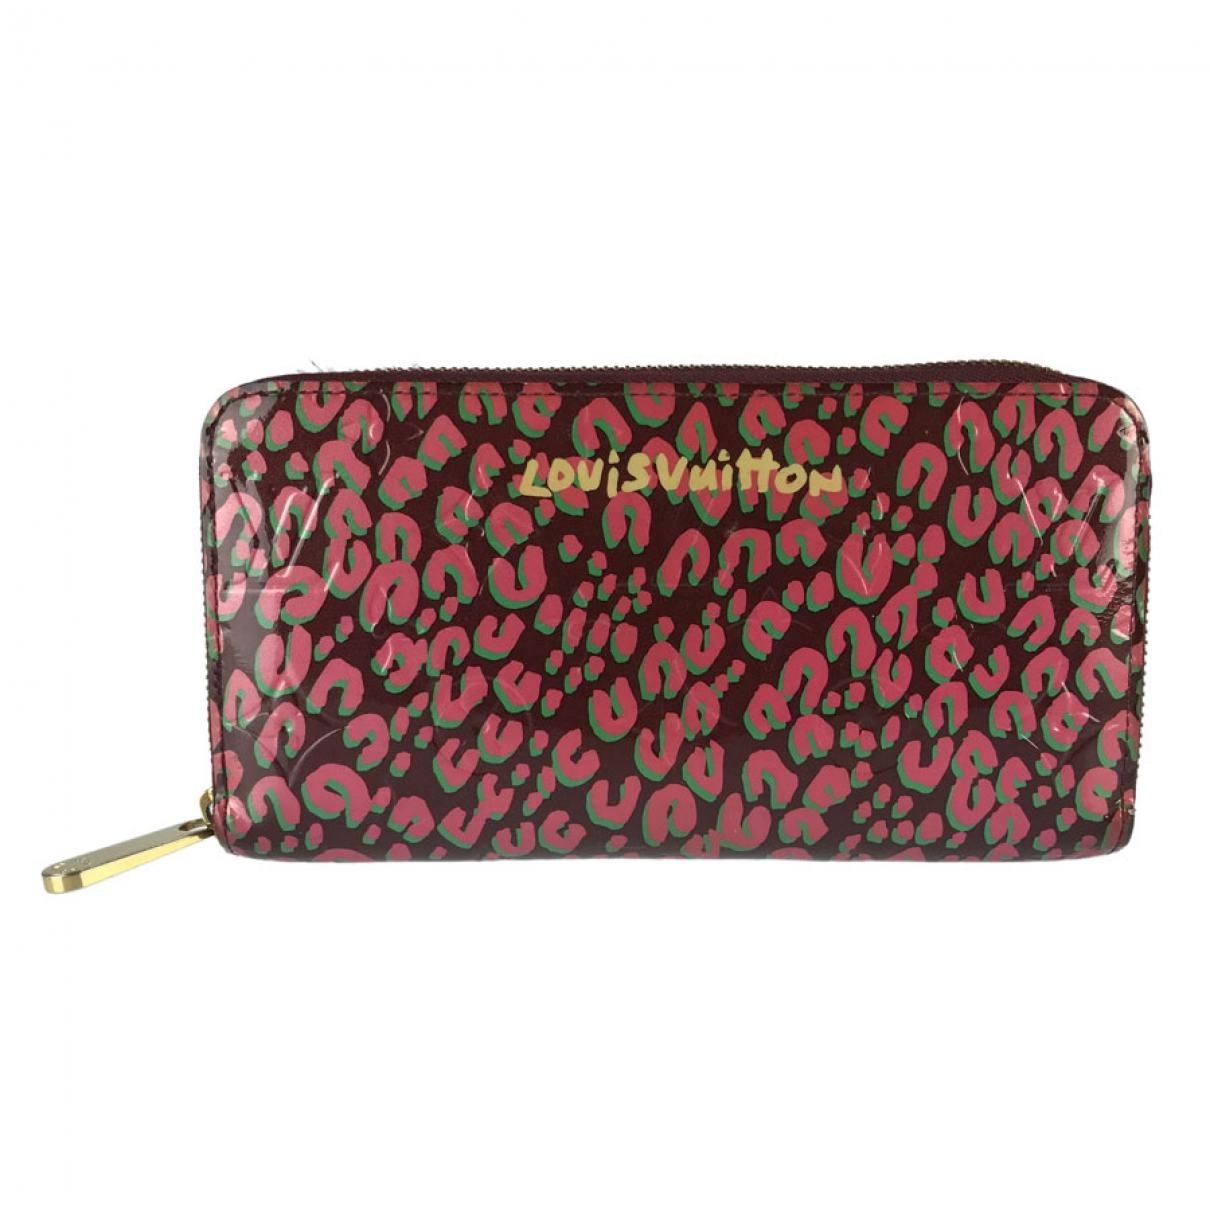 Louis Vuitton Zippy Burgundy Patent leather wallet for Women \N